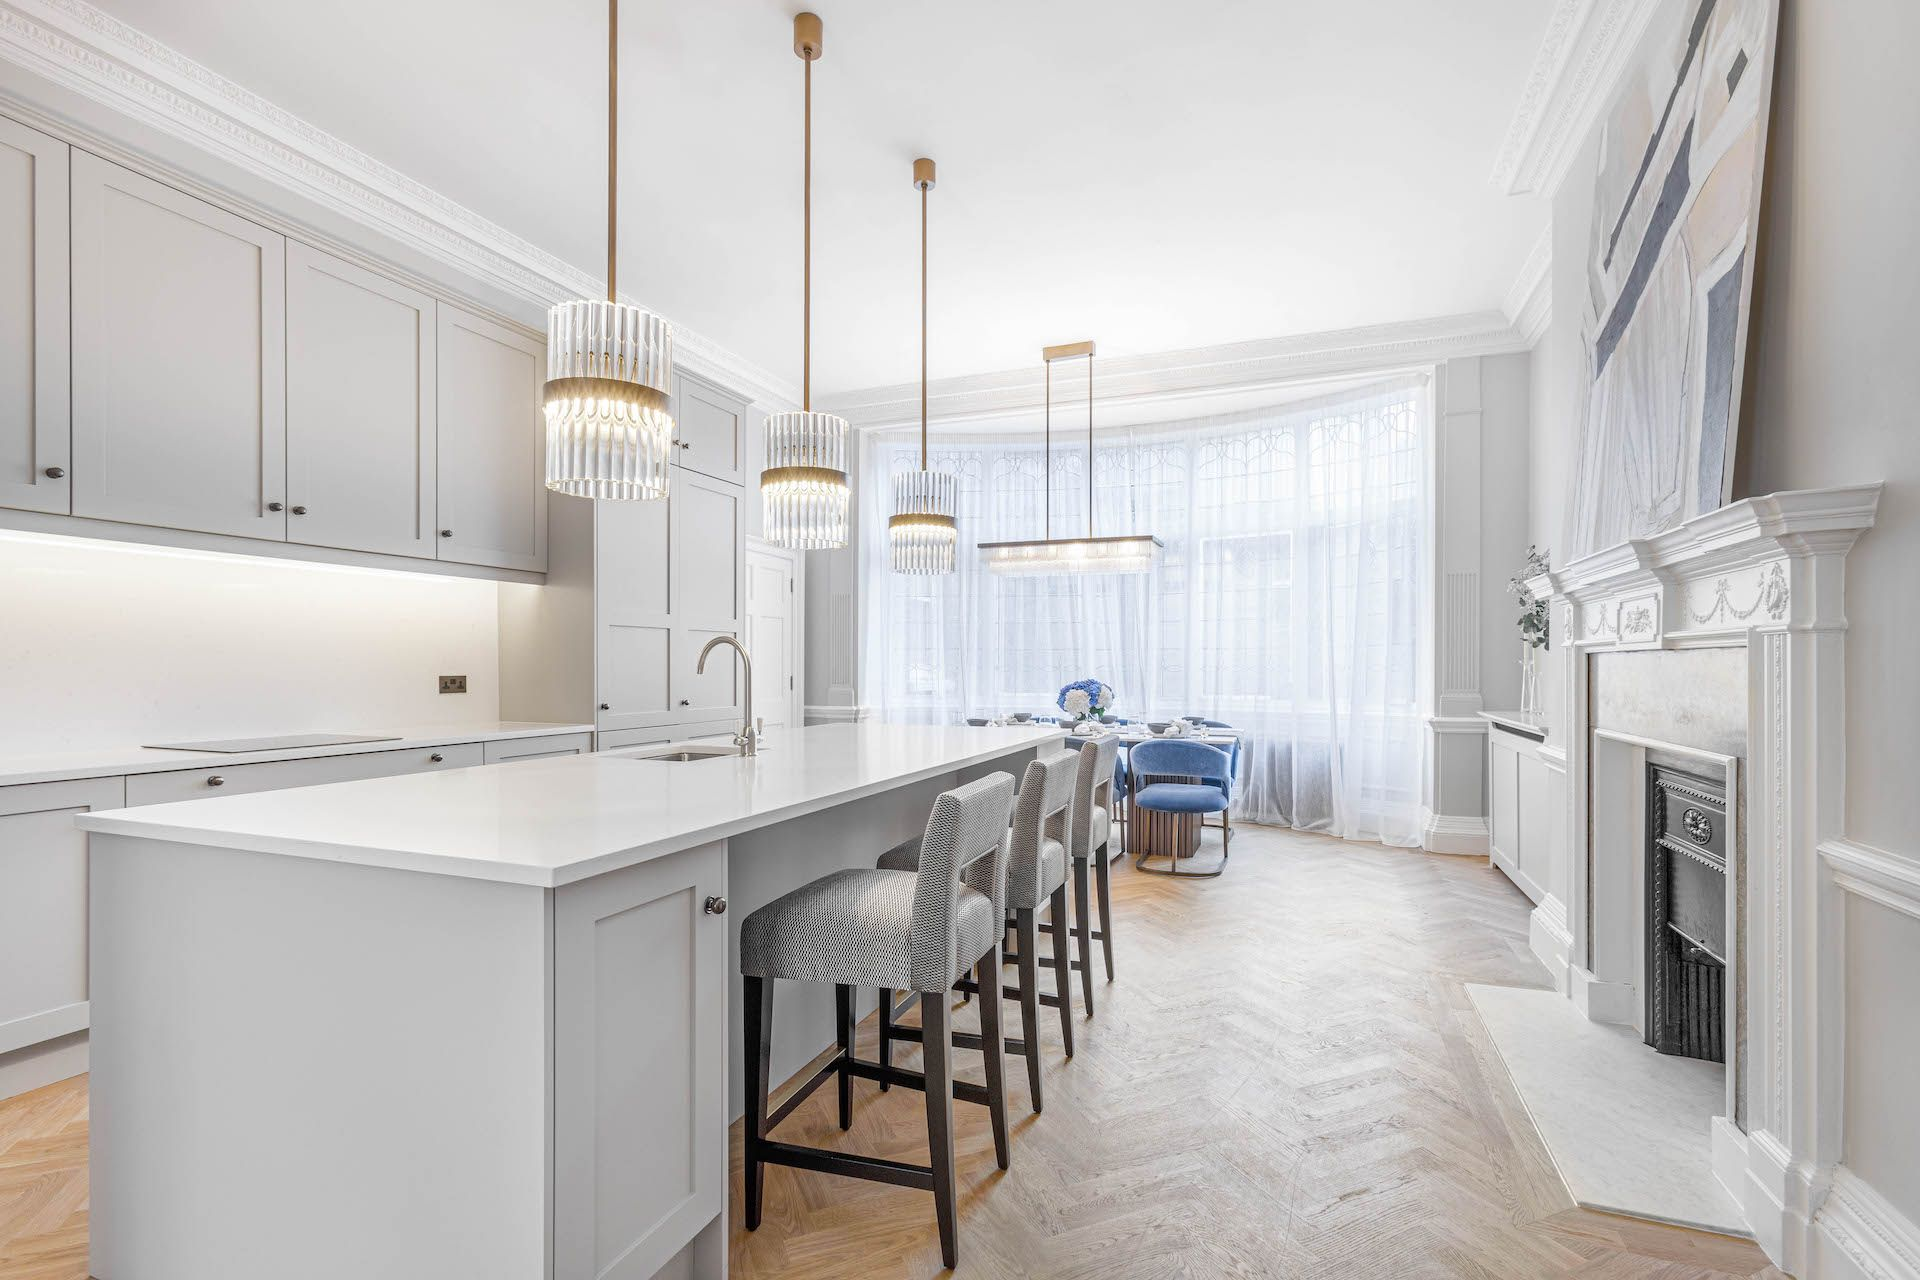 1 Bedroom apartment to rent in London WIM-WI-0002